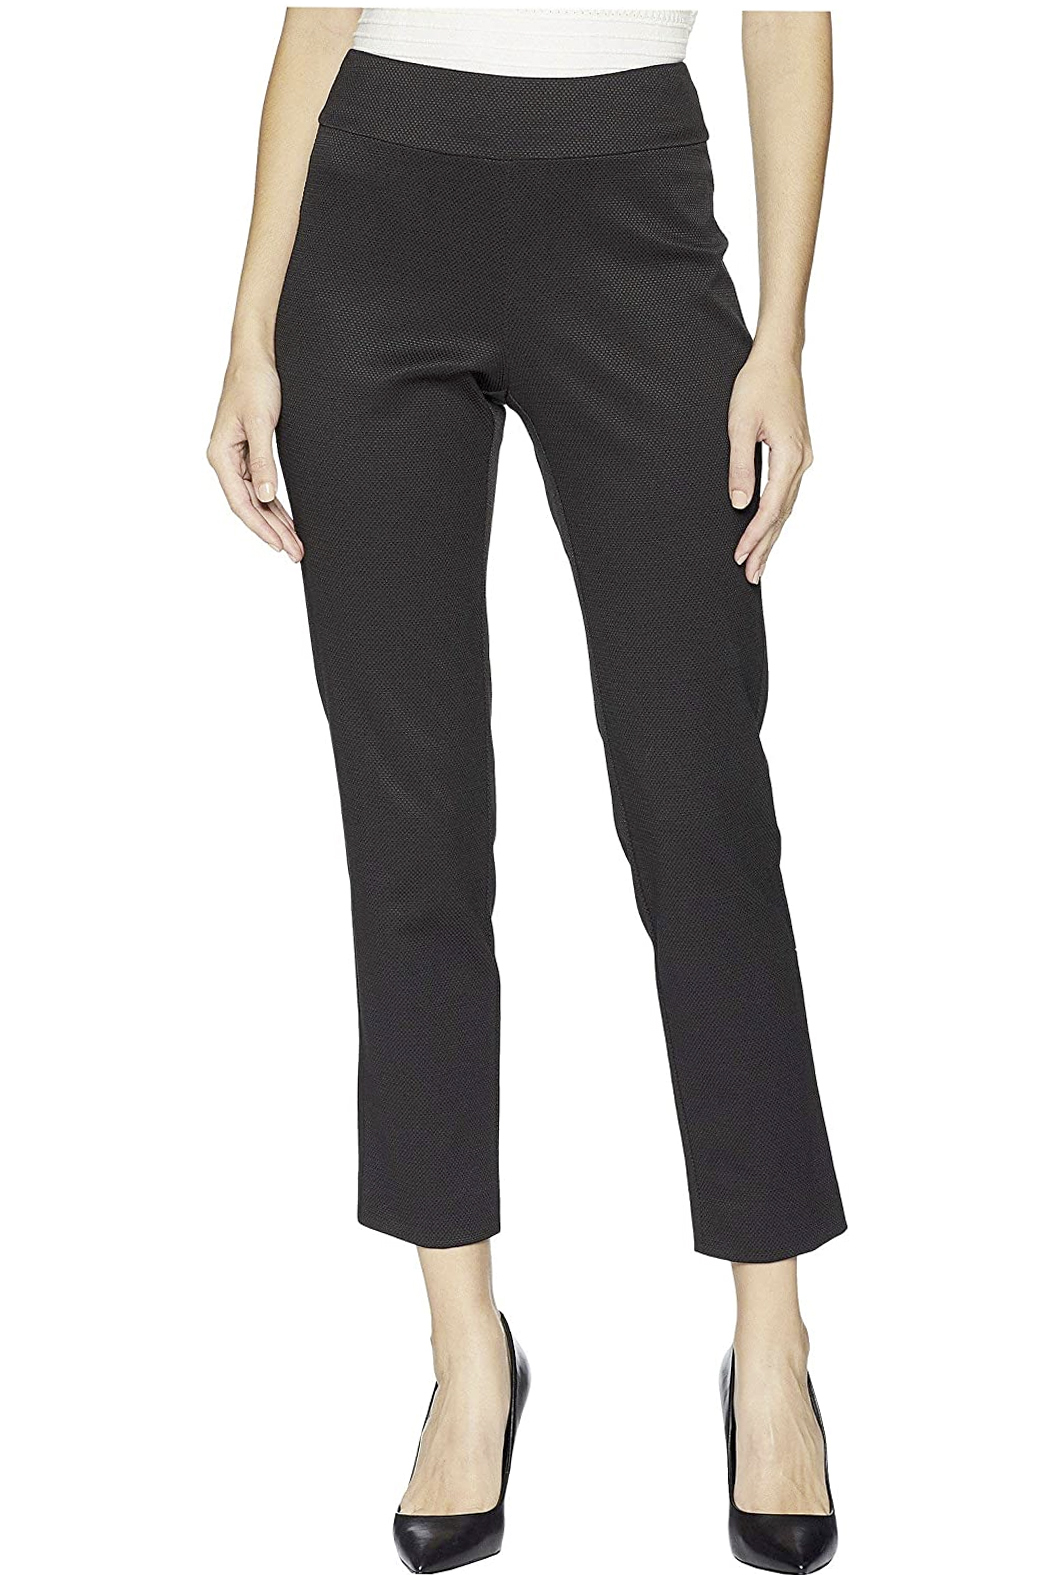 Krazy Larry P-807 Texture Pant - Front Cropped Image